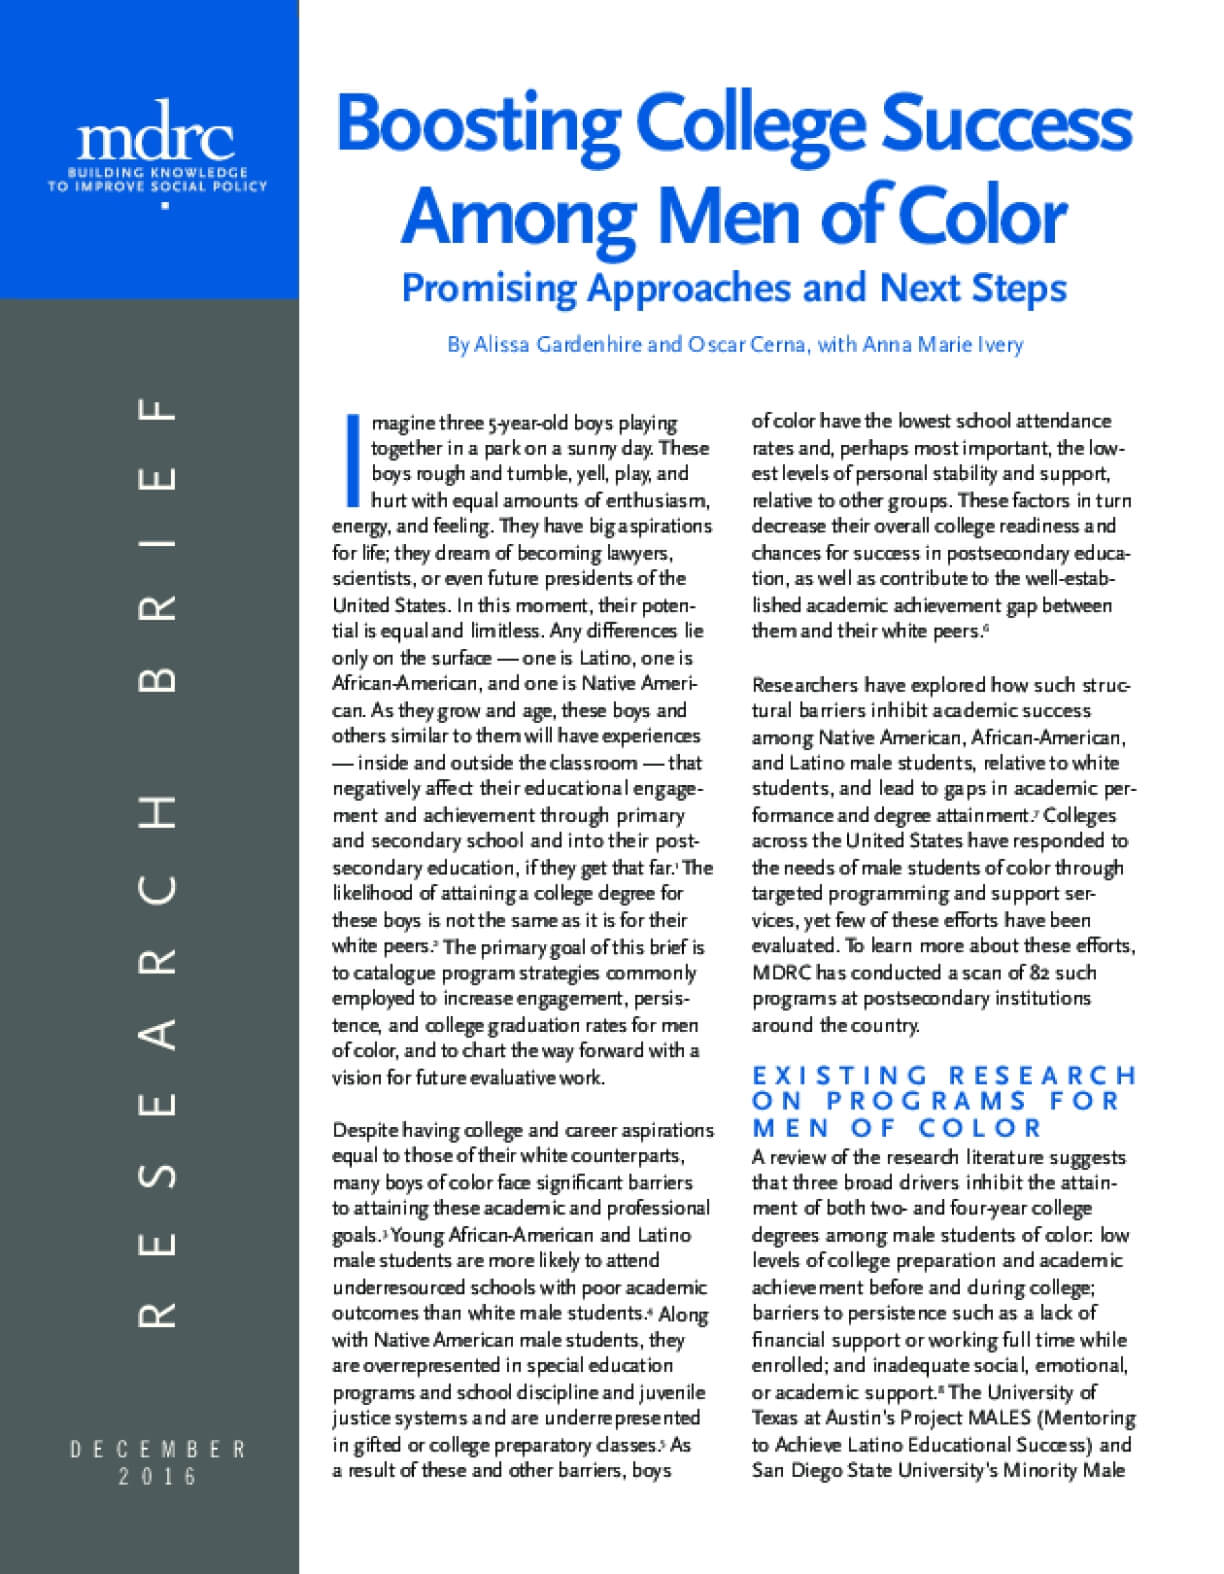 Boosting College Success Among Men of Color